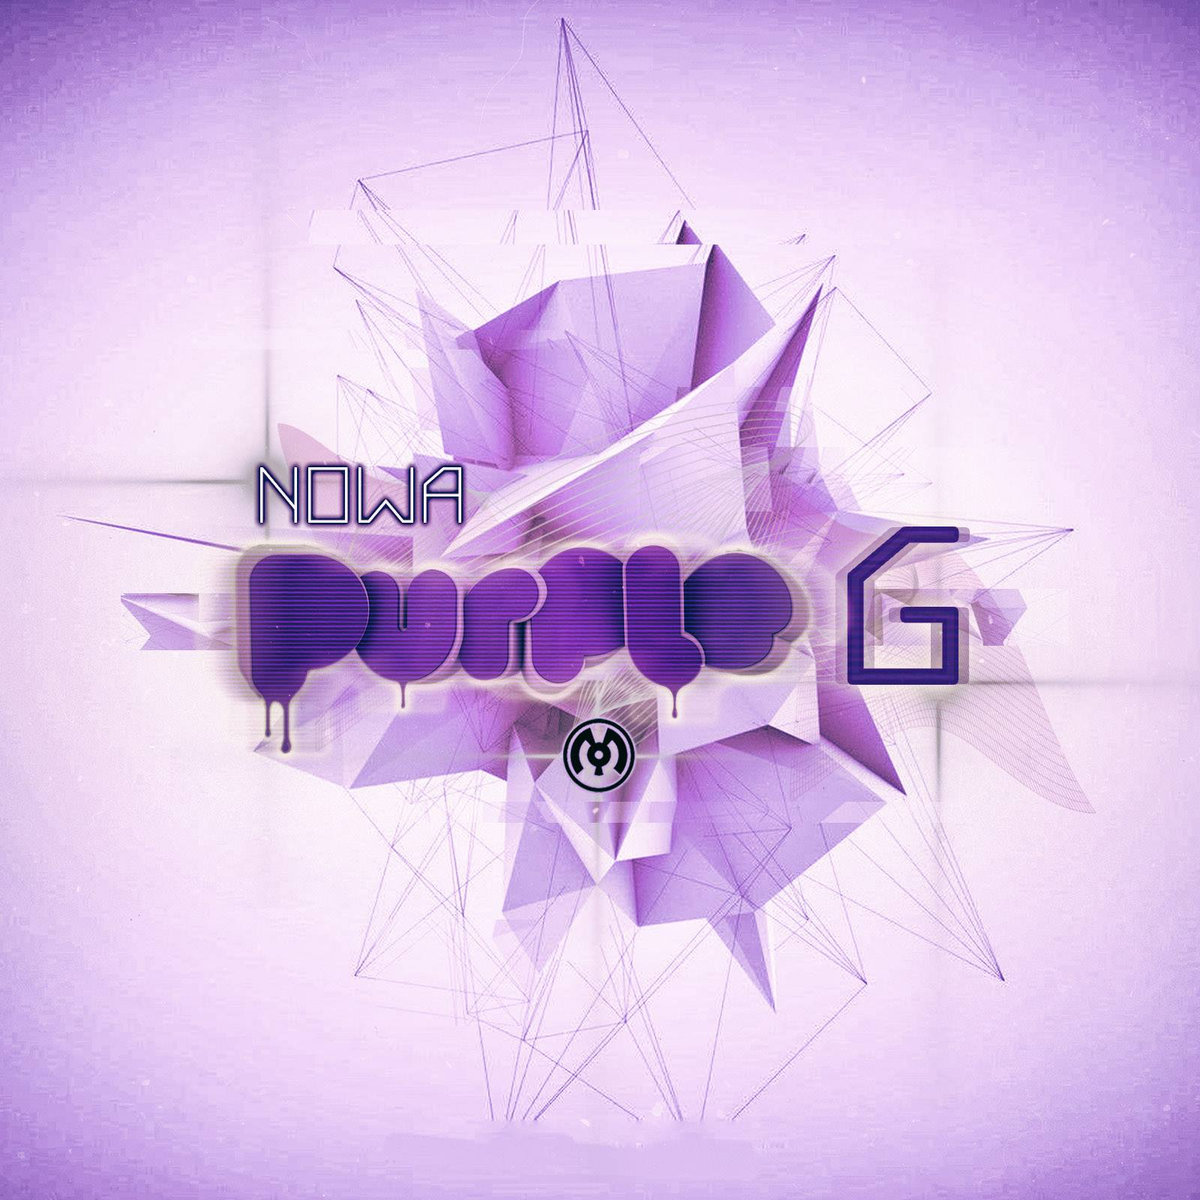 NoWa - Somethings Brewing @ 'Purple G' album (electronic, dubstep)